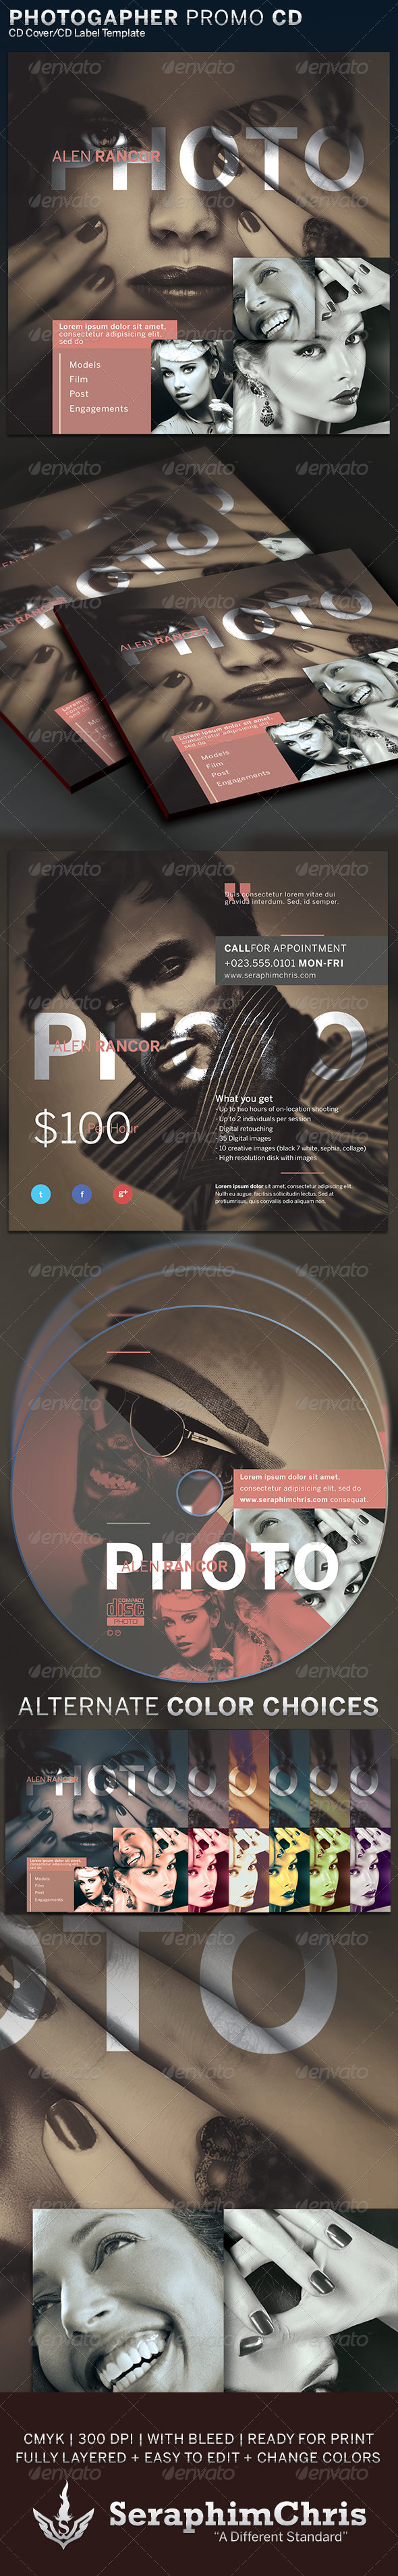 GraphicRiver Photographer Promotional Cover Artwork Template 6365468